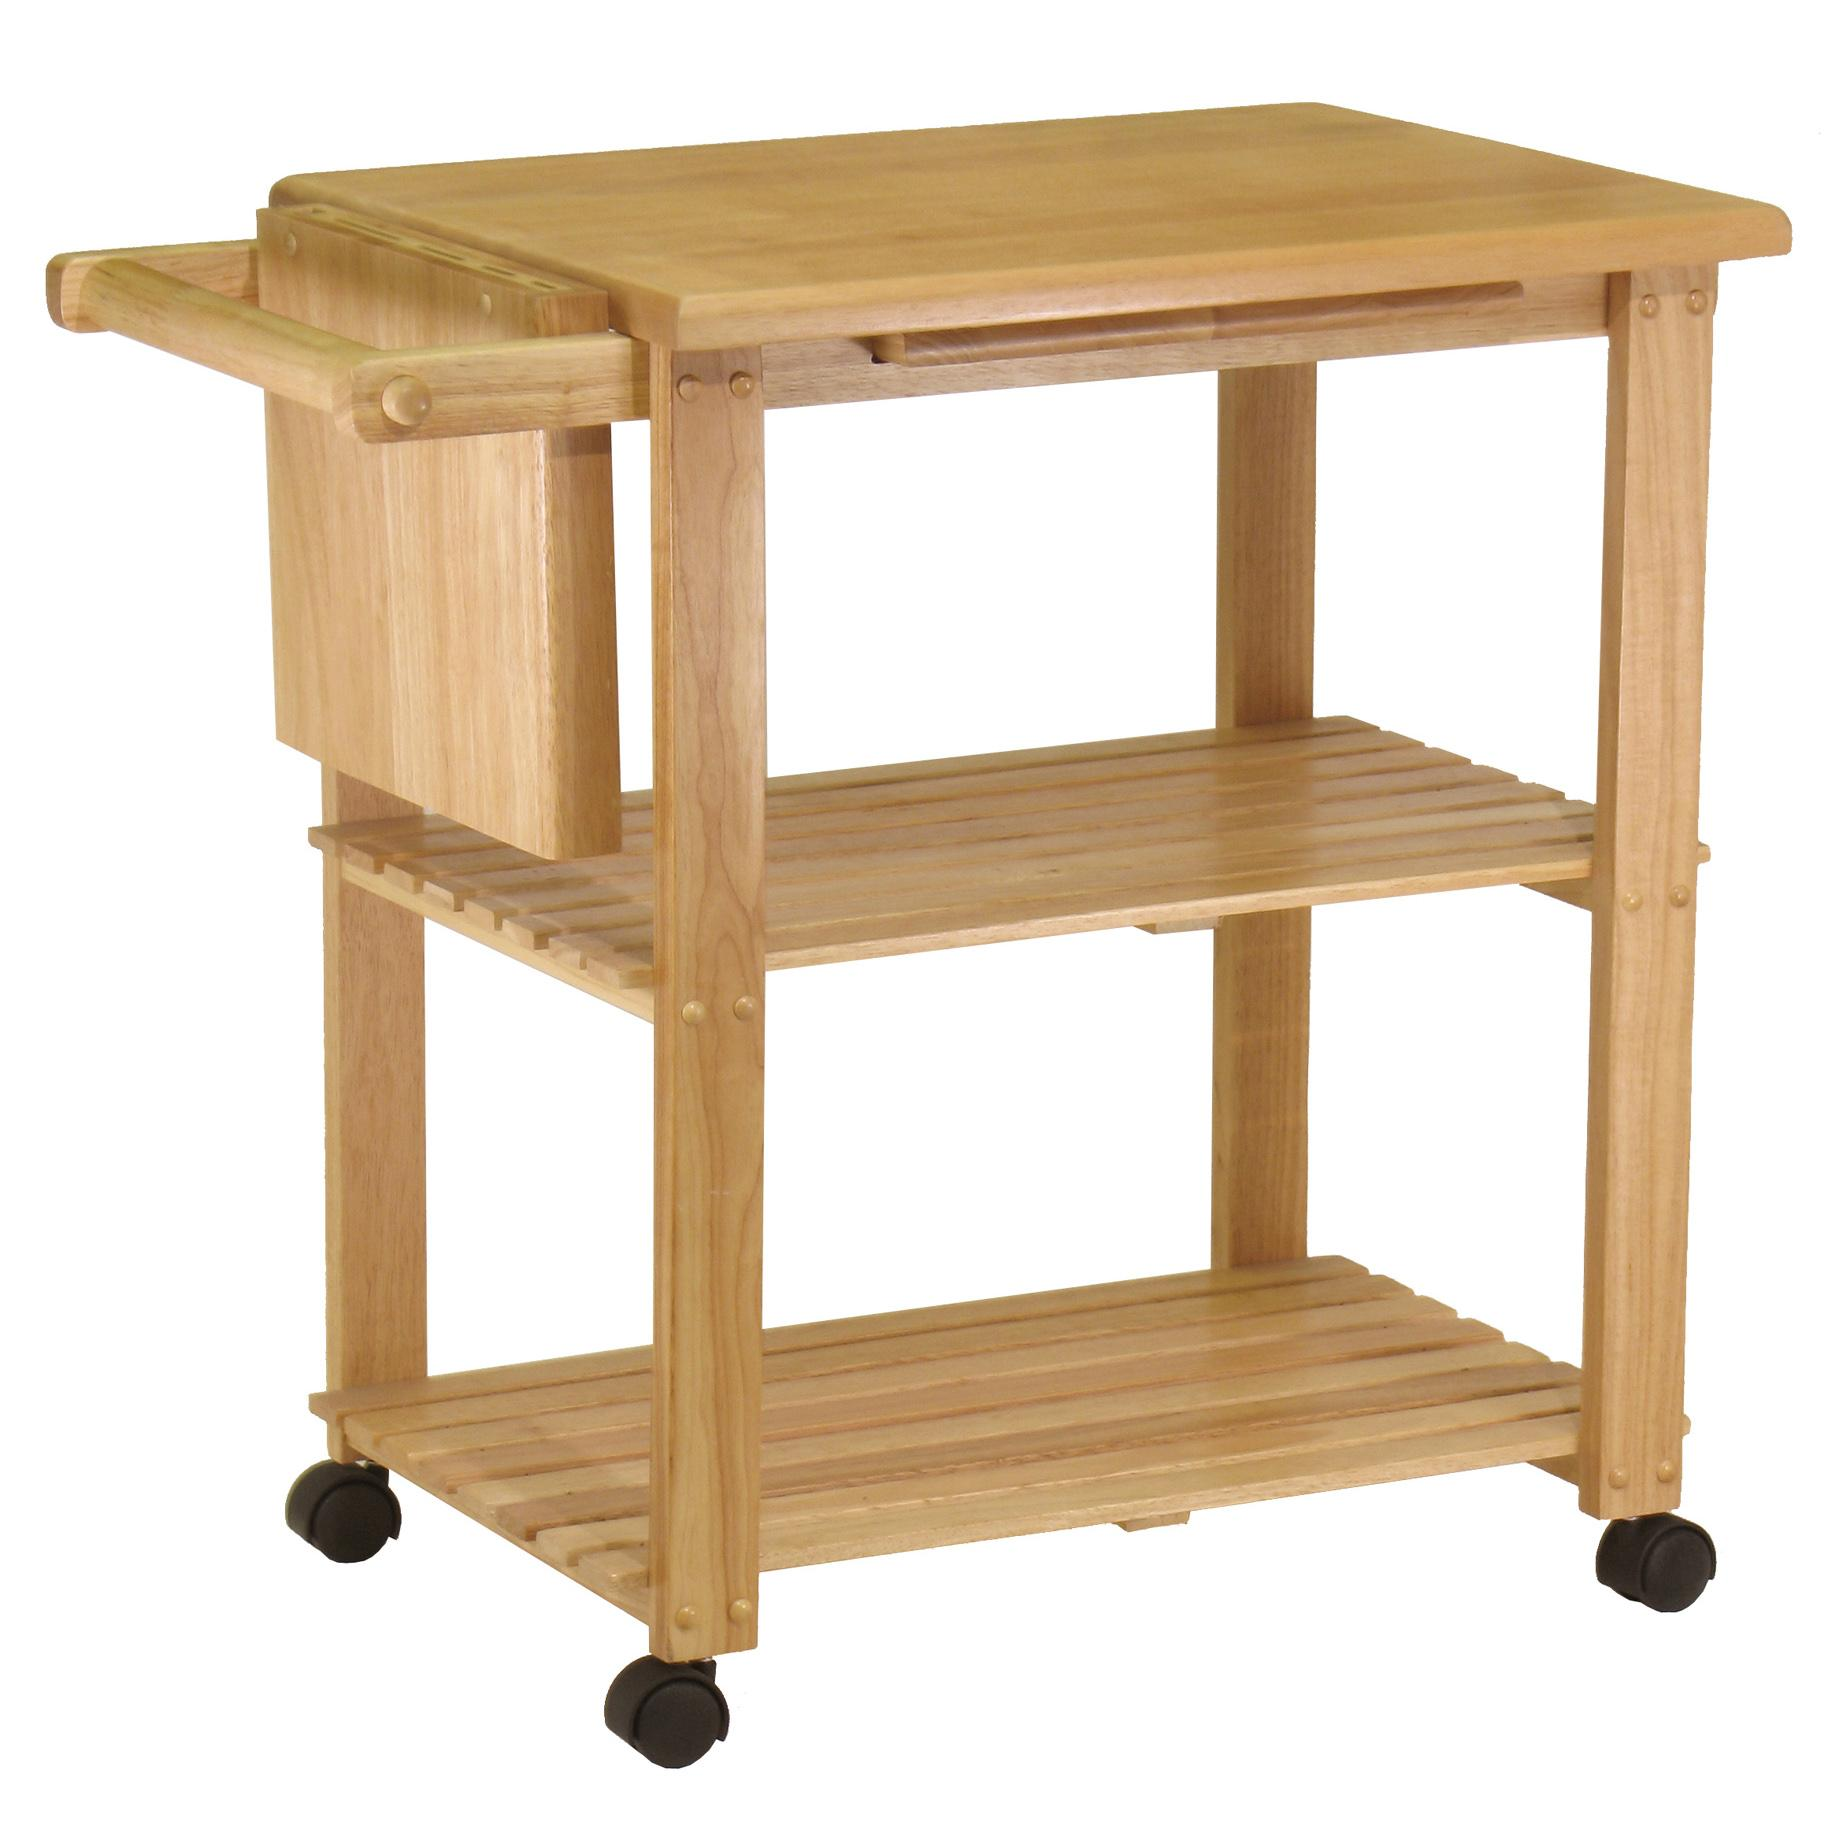 Winsome wood utility cart natural kitchen islands carts Kitchen utility island